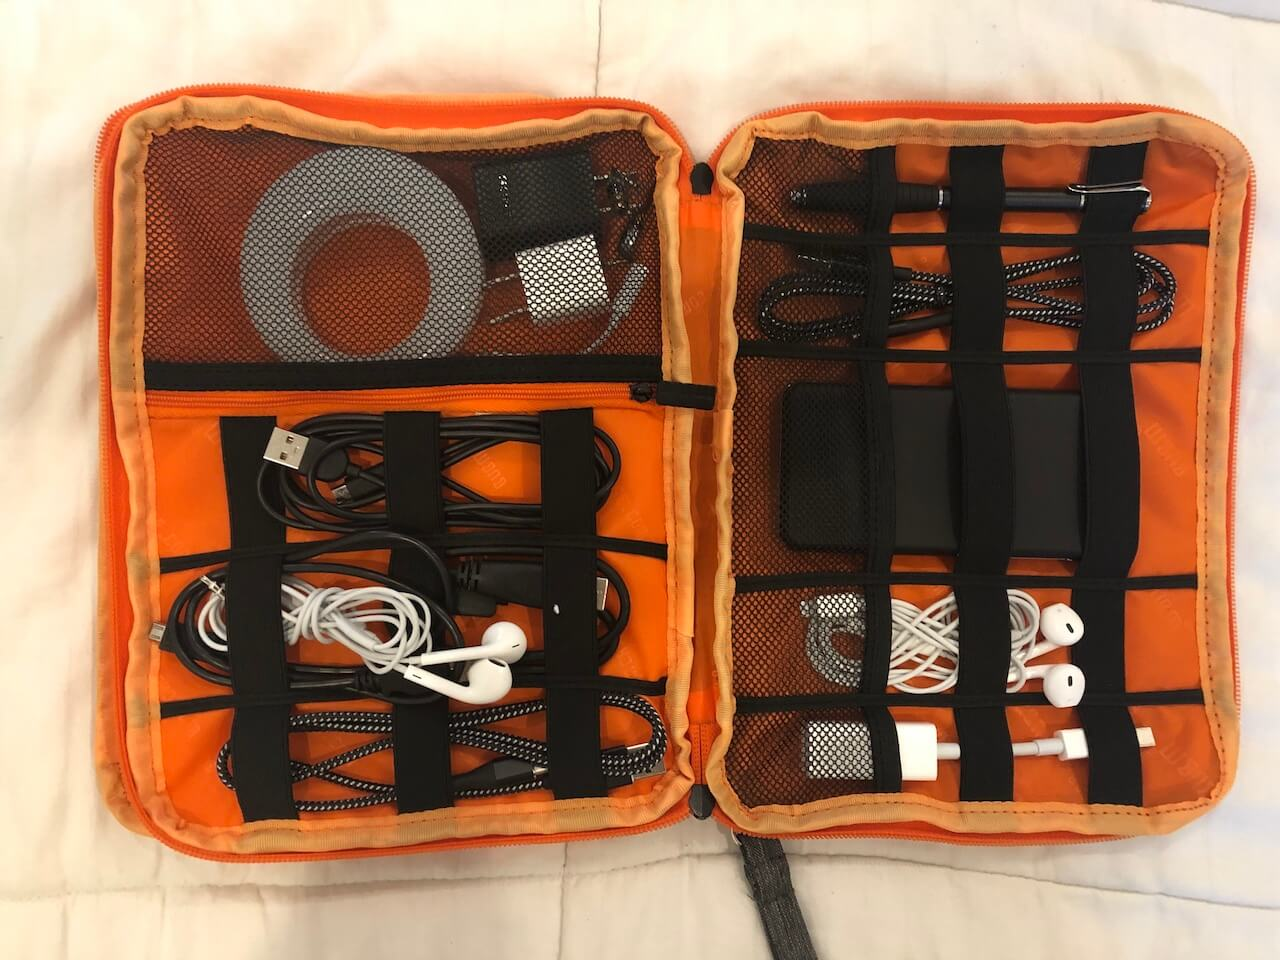 c45709dde91c The Electronics Travel Organizer Bag that I'll Never Travel Without – BUBM  Travel Cable Organizer Review